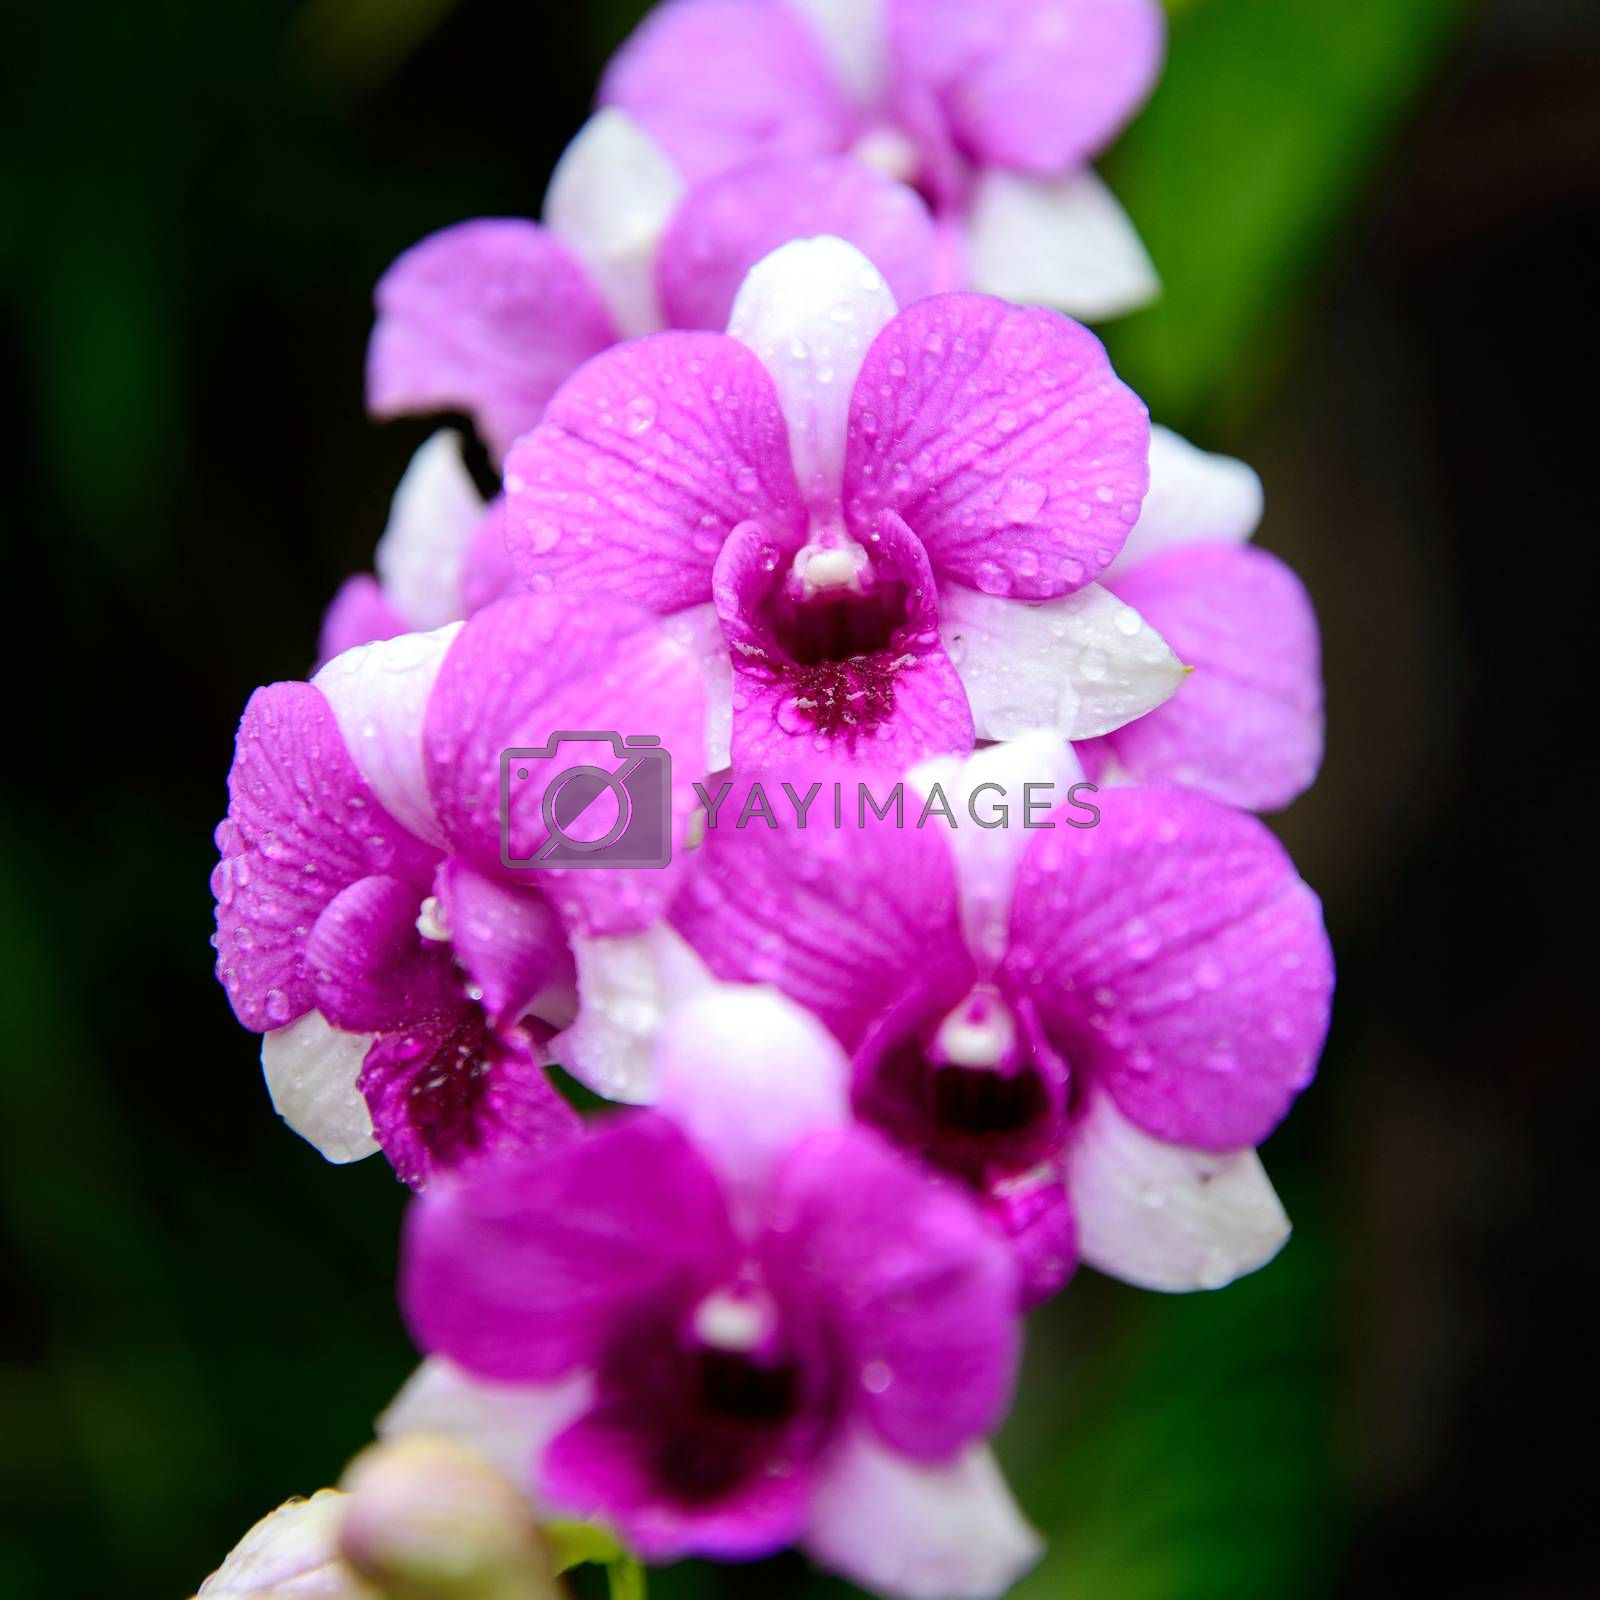 Flowers Orchid ( Dendrobium pink ) on green leaves background by jakgree